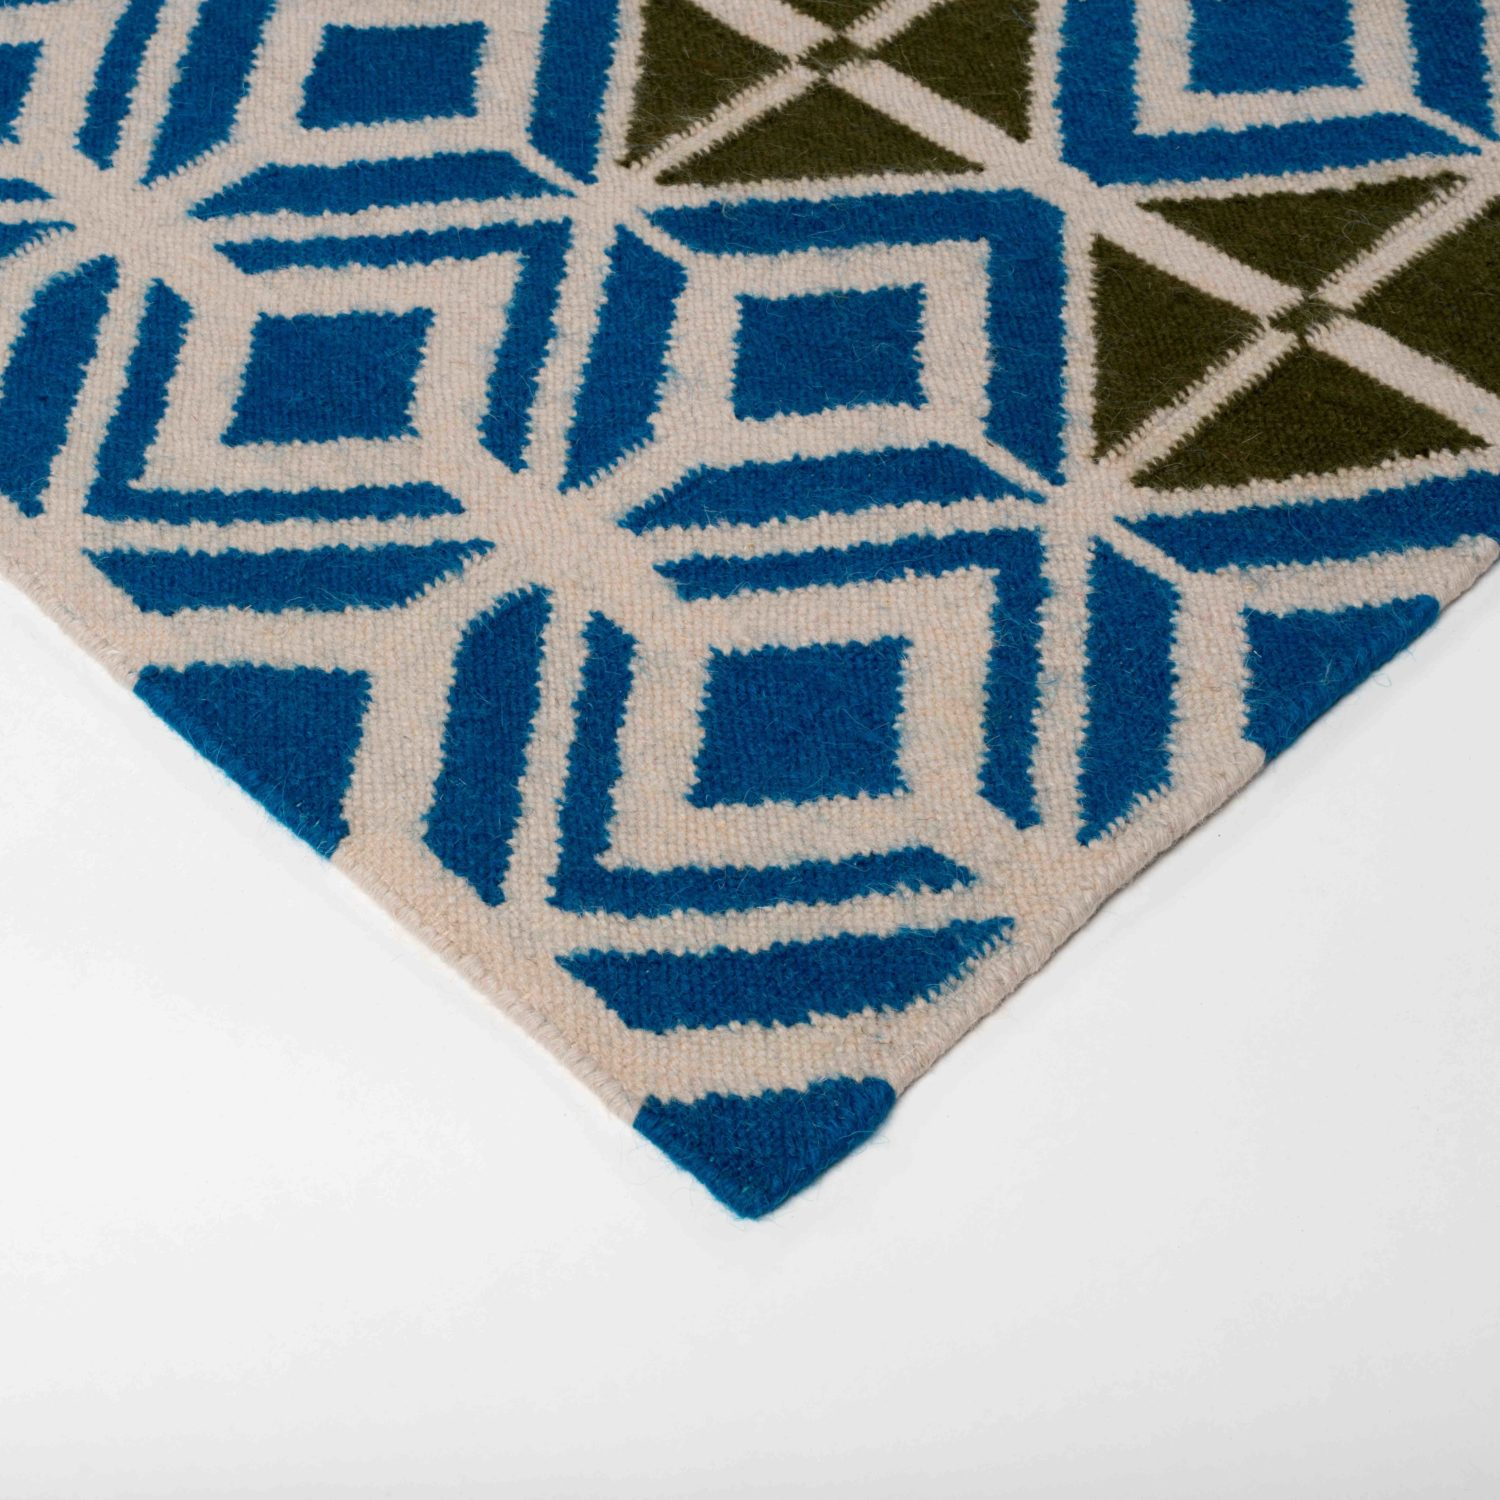 A rug drawing influence from the industrial revolution and the fusion between industry and craft